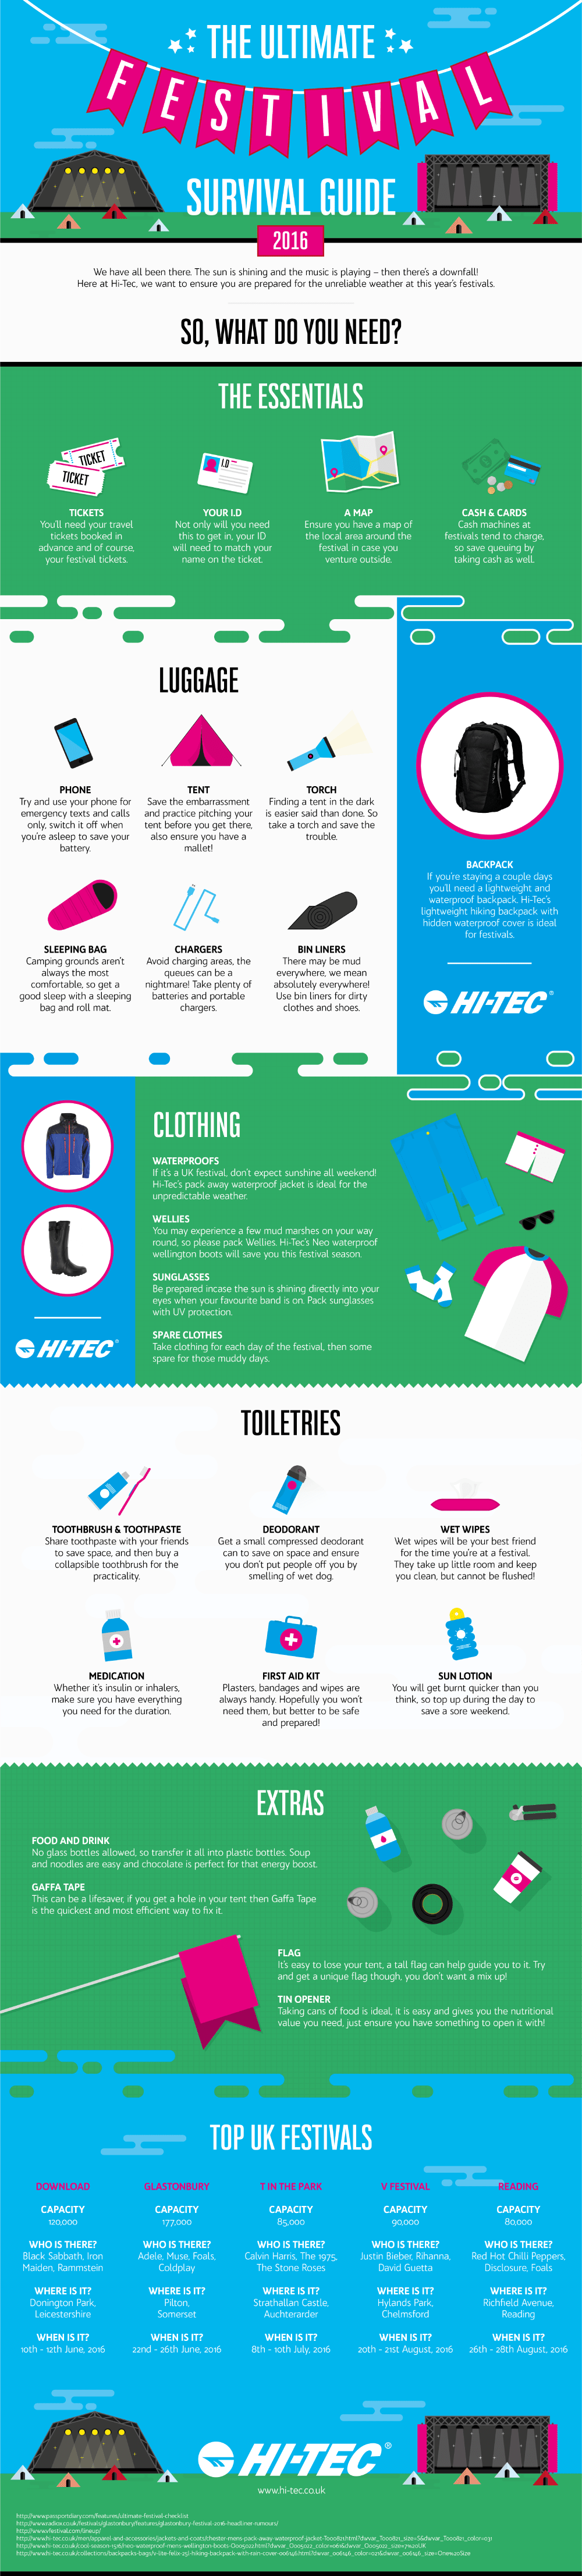 Hi-Tec – The Ultimate Festival Guide